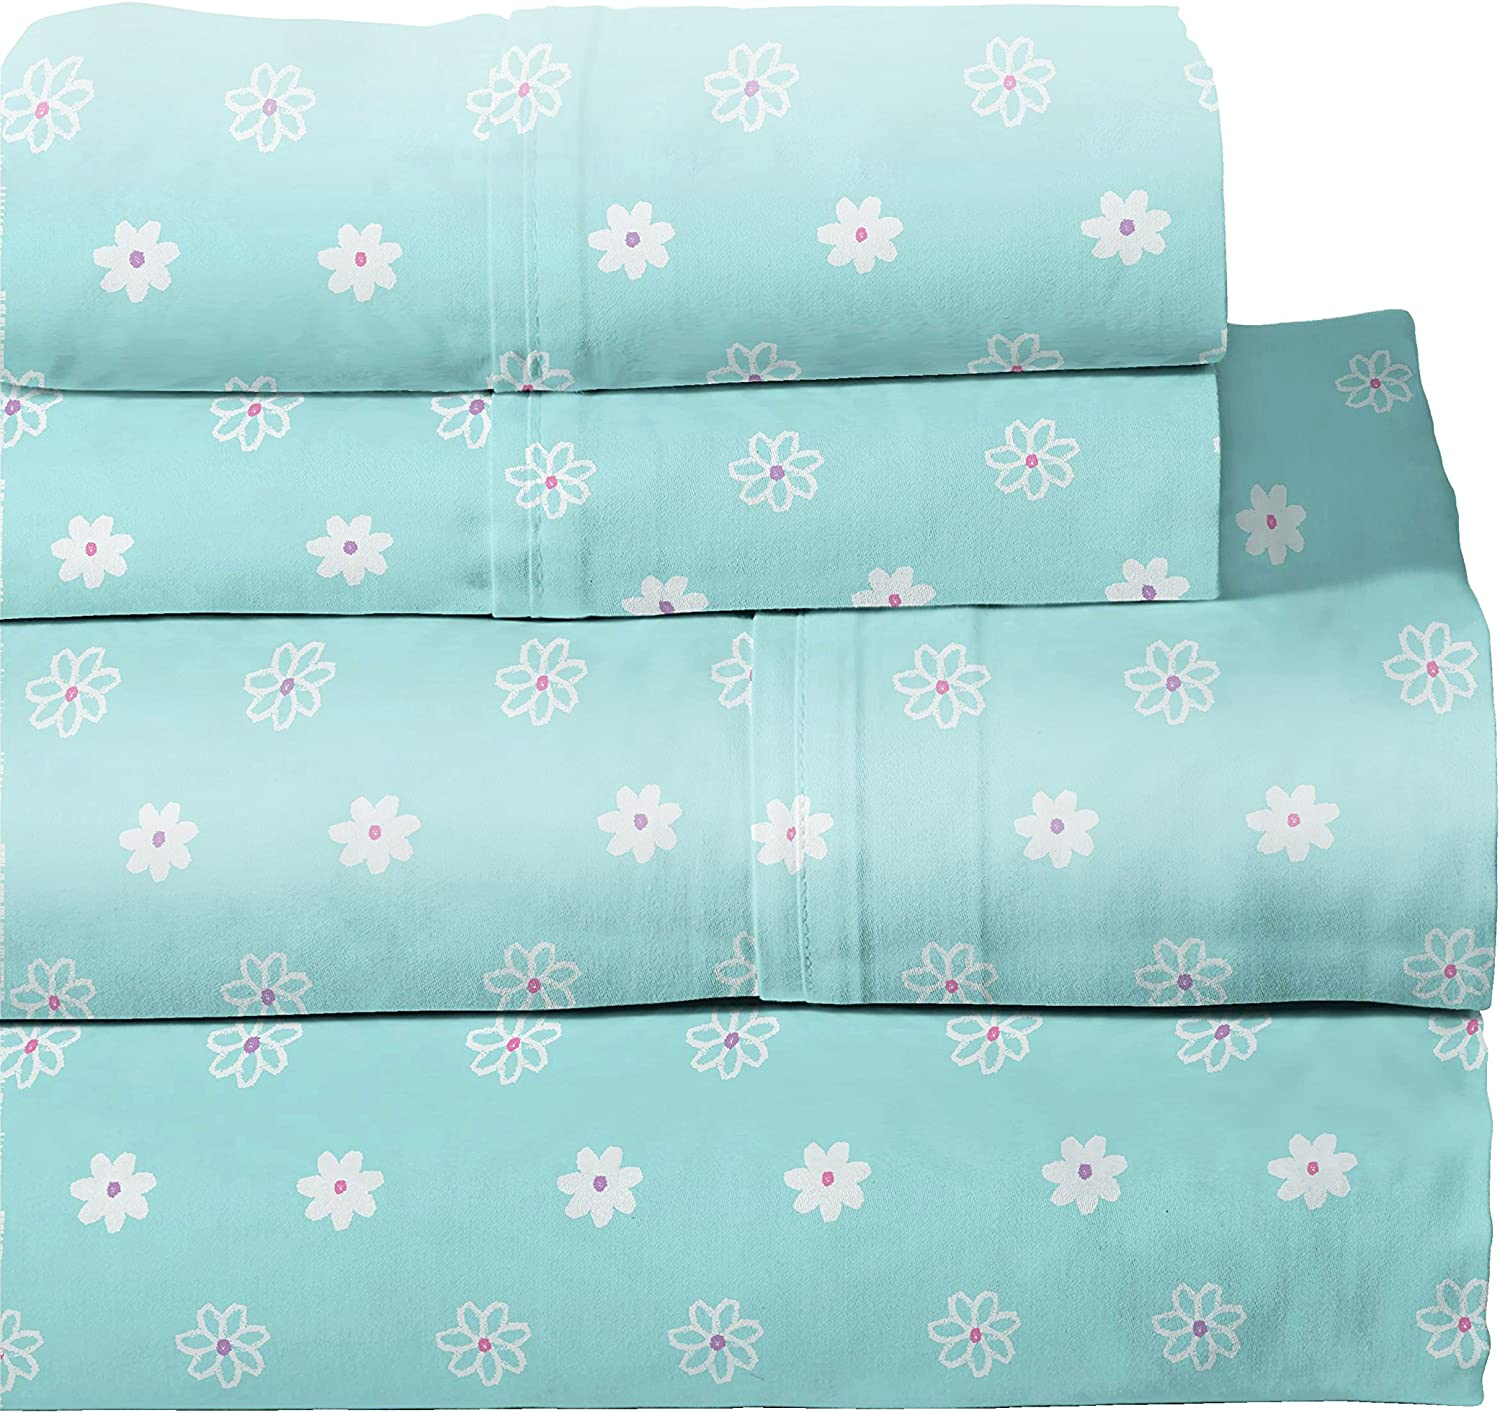 Lullaby Bedding 200-TBFLY Butterfly Garden Twin Cotton Printed Sheet Set